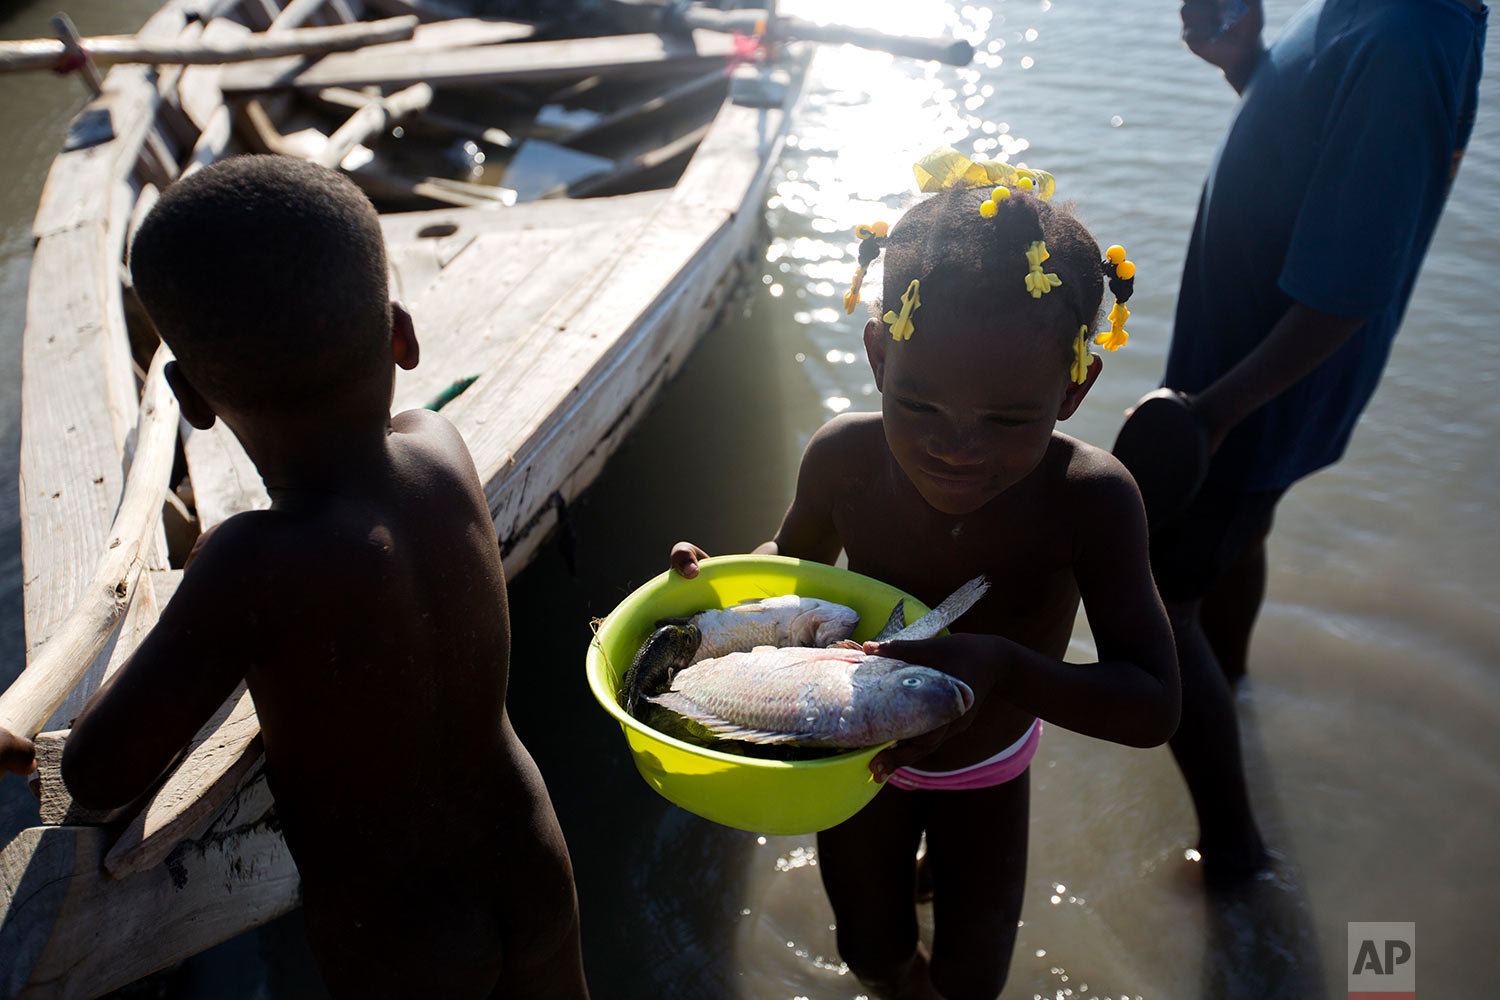 In this April 26, 2018 photo, Gerline Louis, the six-year-old daughter of fisherman Miguel Louis, carries the five fish her father caught in Lake Azuei in Fond Parisien, Haiti. Most people in this small border town, like Louis' family, get most of their meals from fish from the lake. (AP Photo/Dieu Nalio Chery)